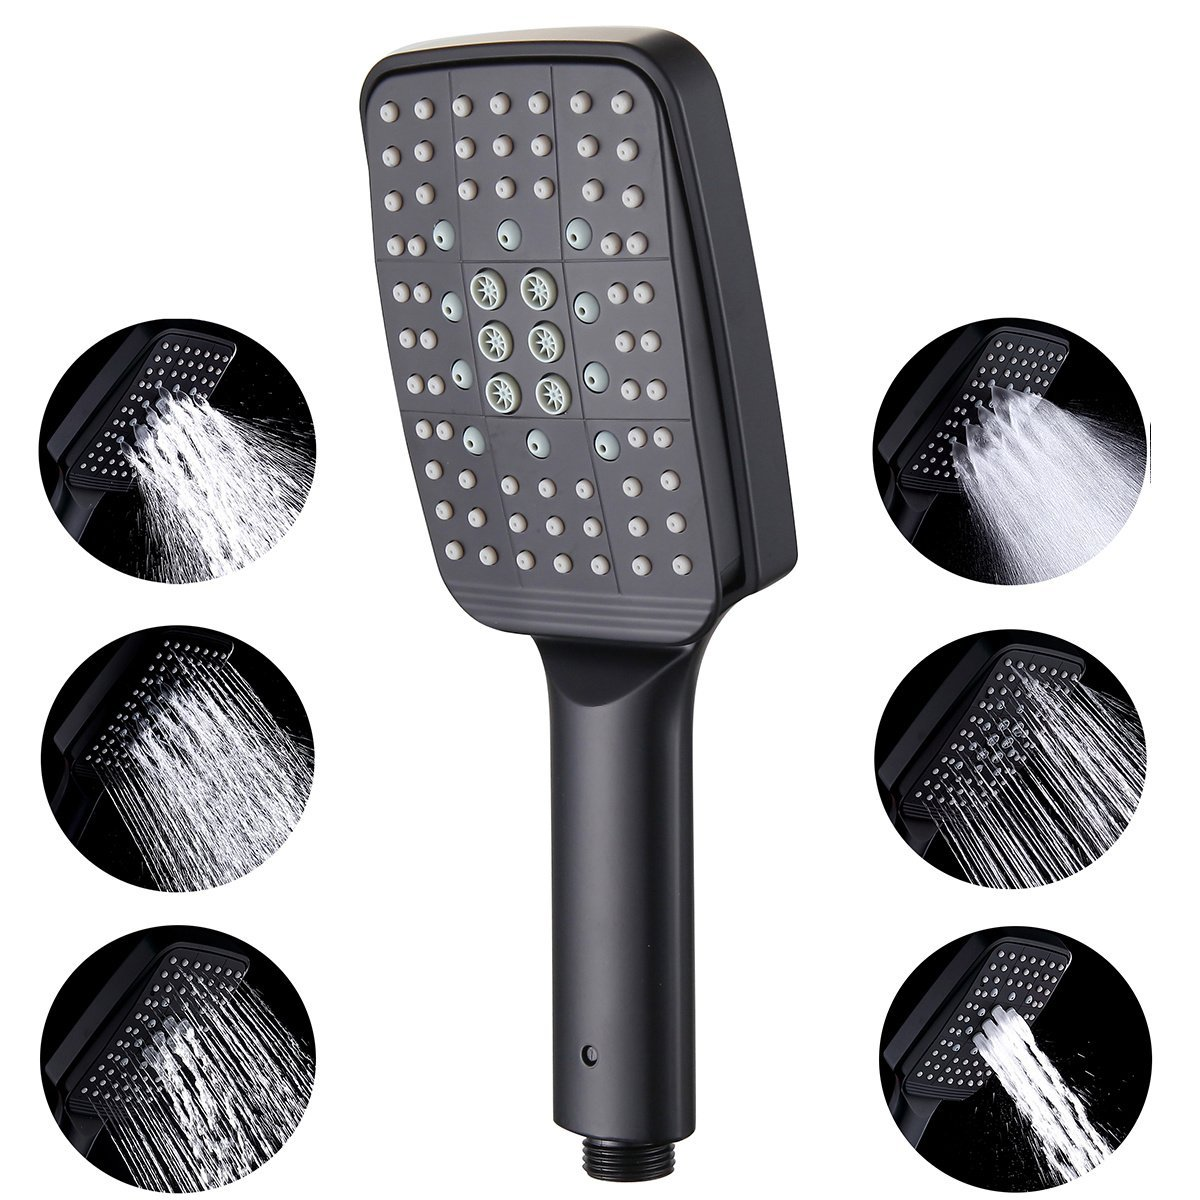 Primary image for RBROHANT Handheld Shower Head Replacement, 6 Function Modern Bathroom Removable